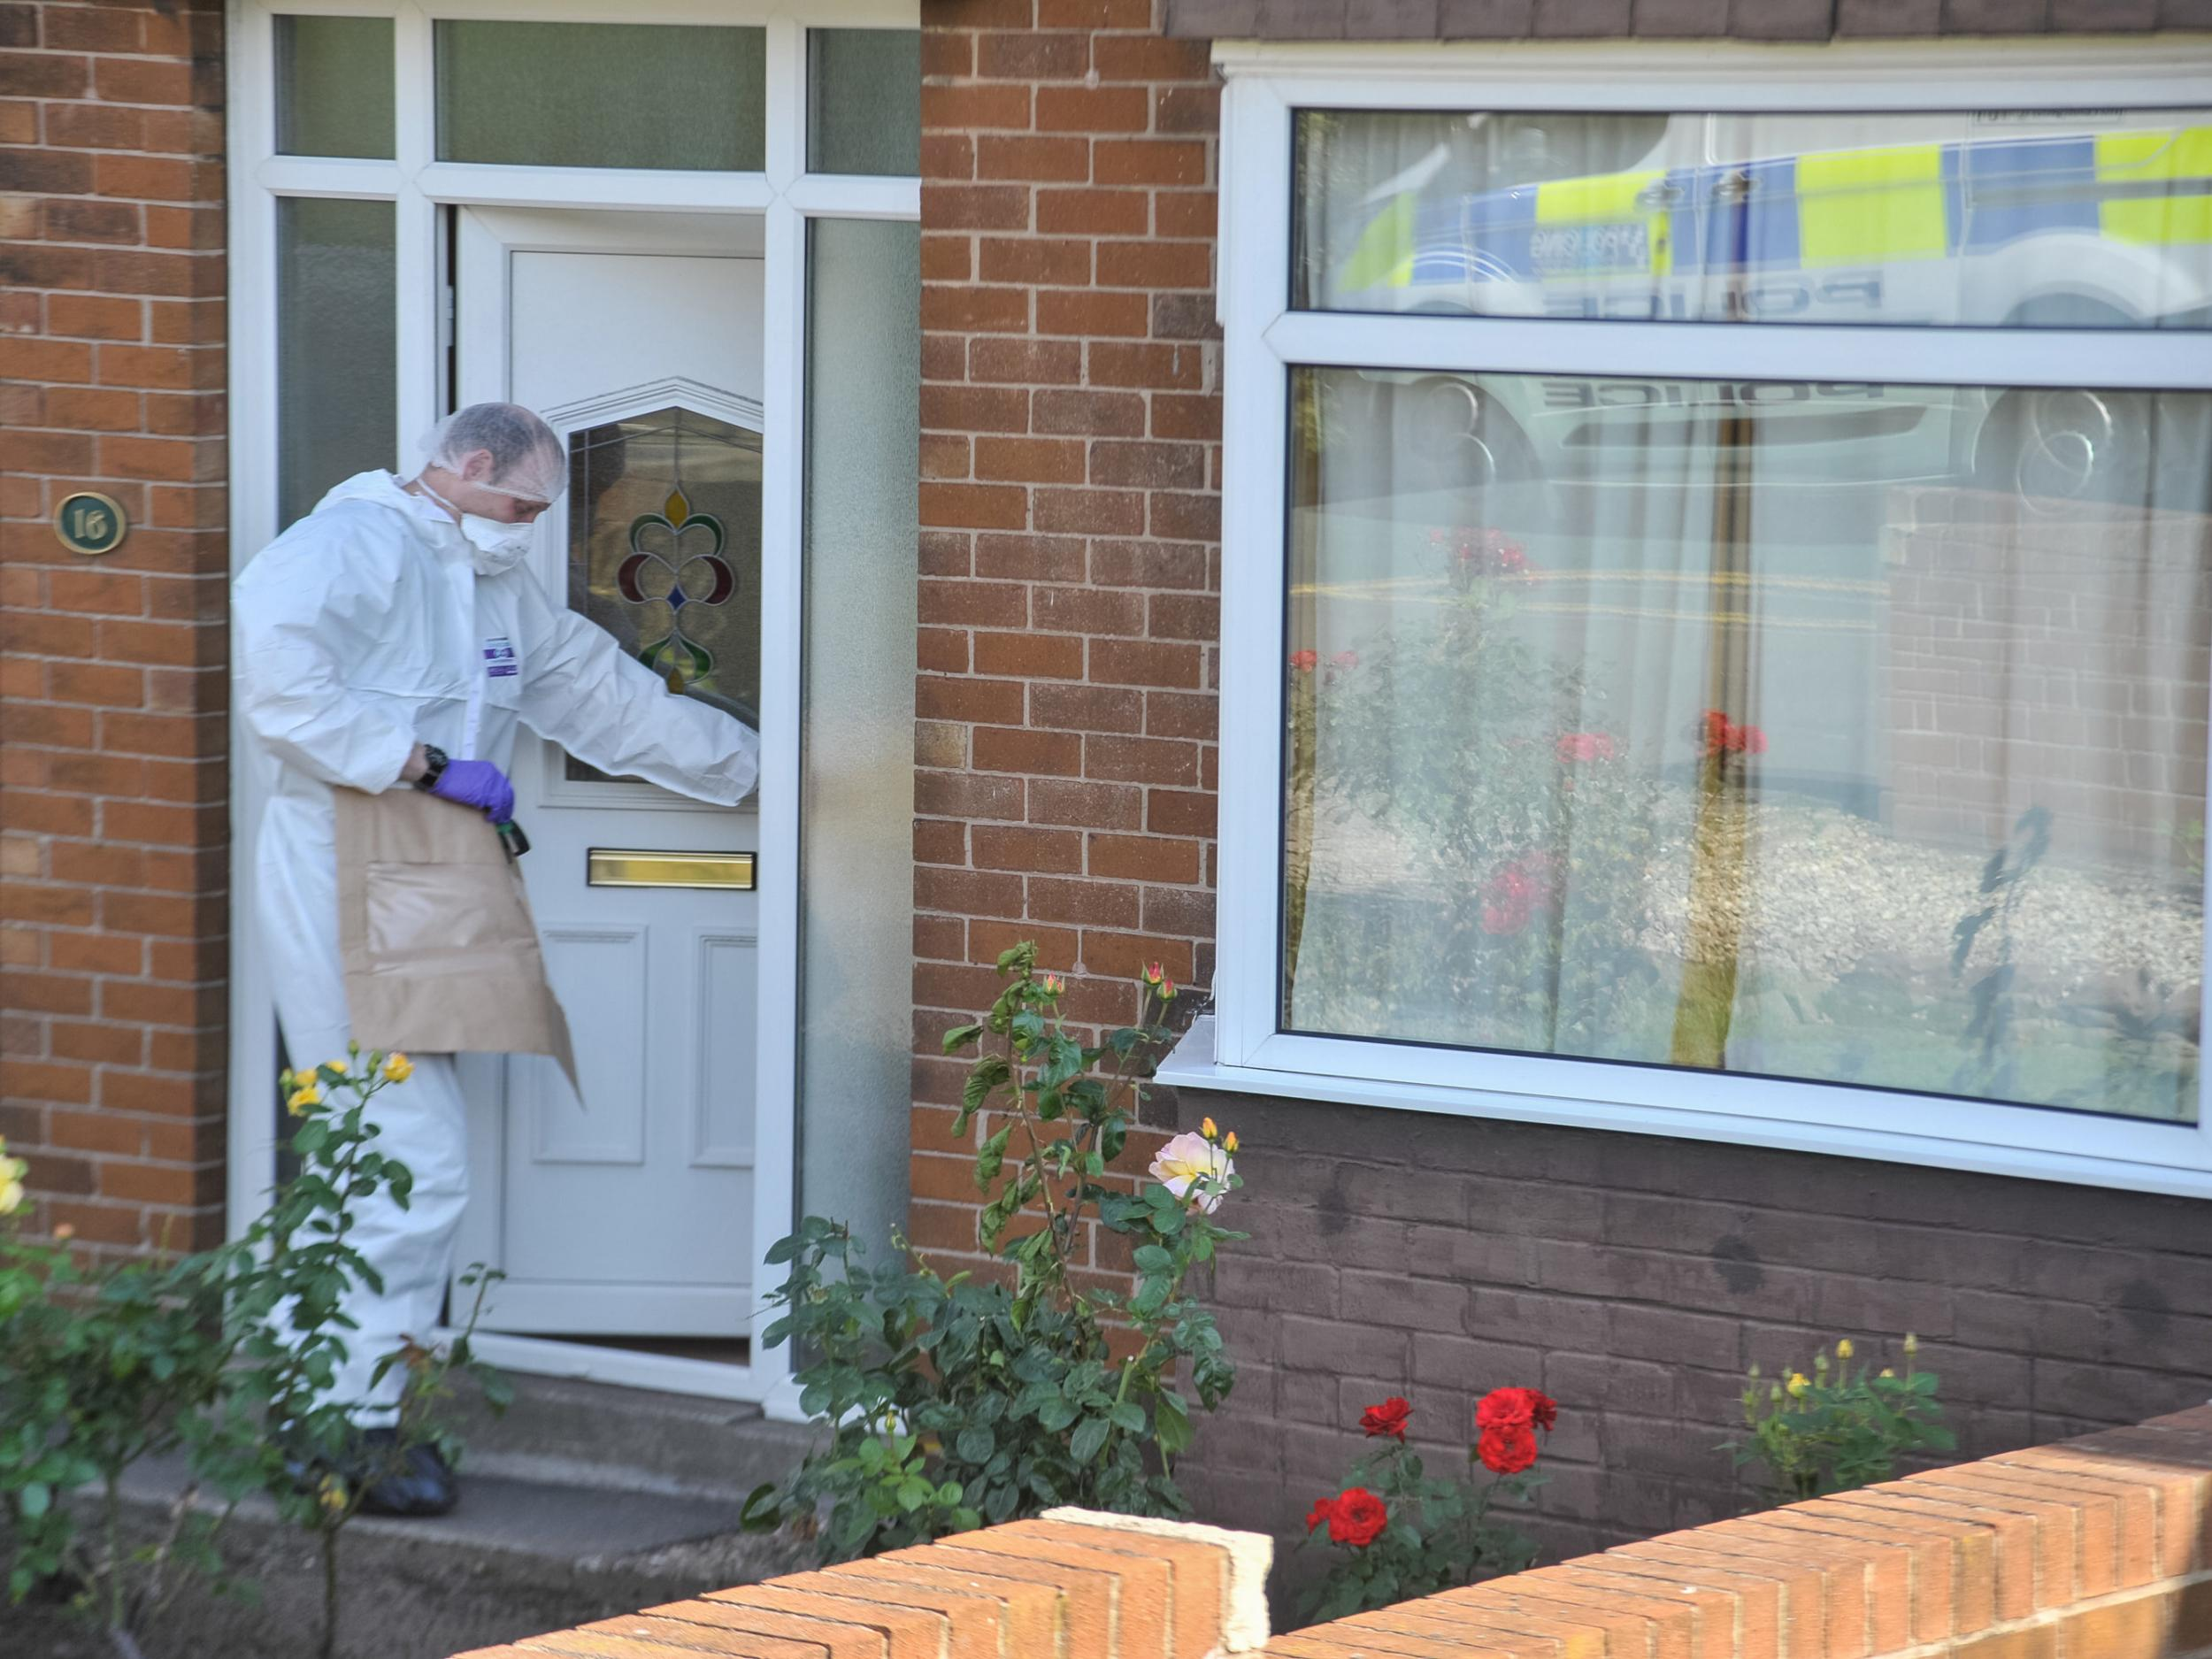 83-year-old woman charged with murder of 85-year-old man in Sheffield